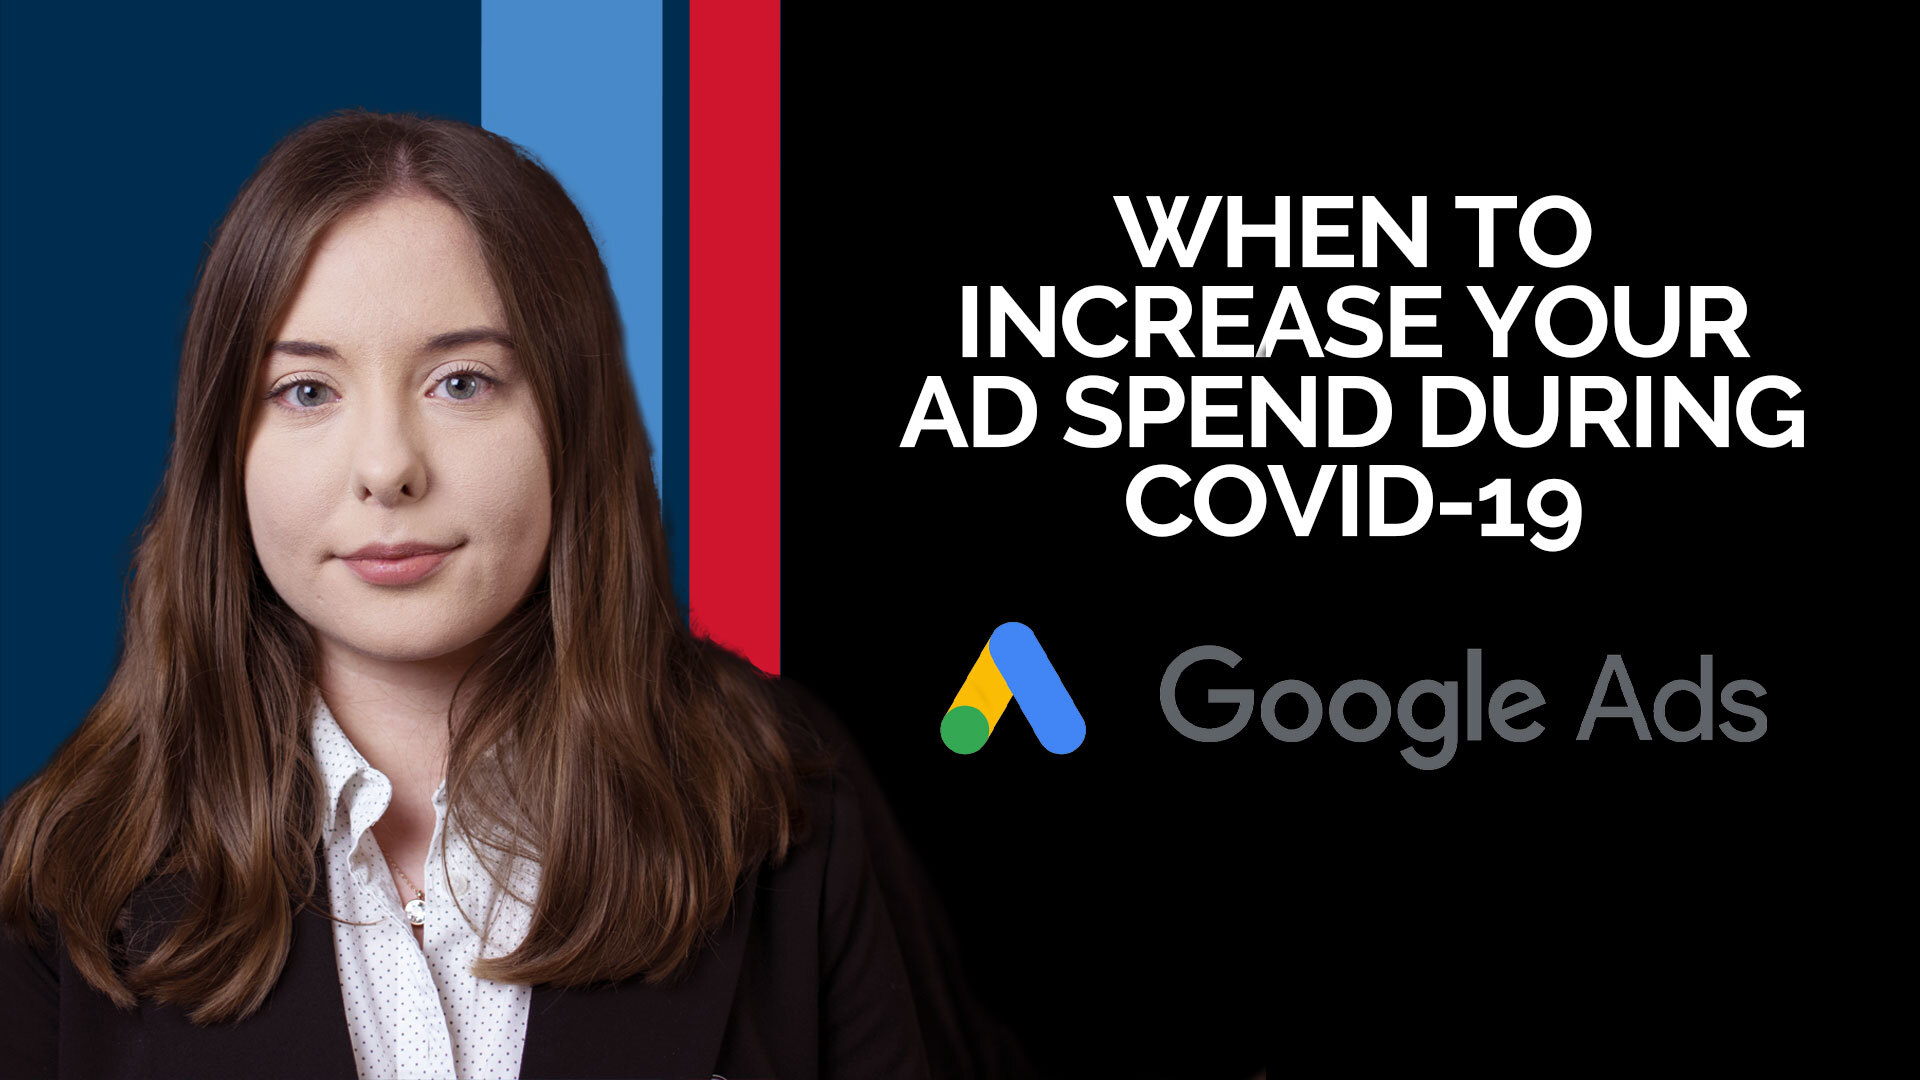 When to Increase your Ad Spend During Covid-19